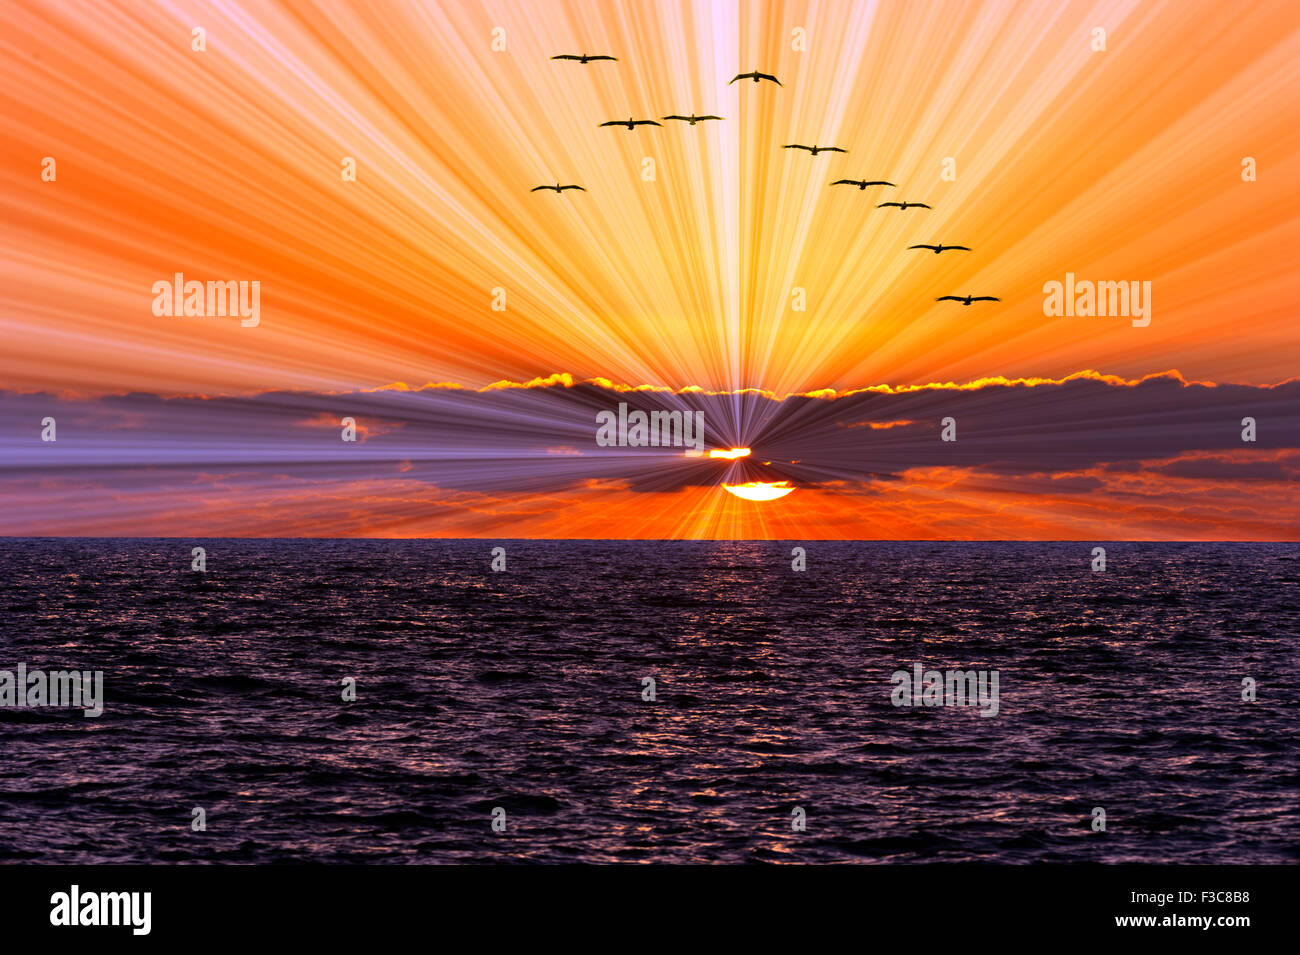 Sun ray ocean sunset is a bright burst of sun rays shooting out from behind the clouds as a flock of birds flies - Stock Image